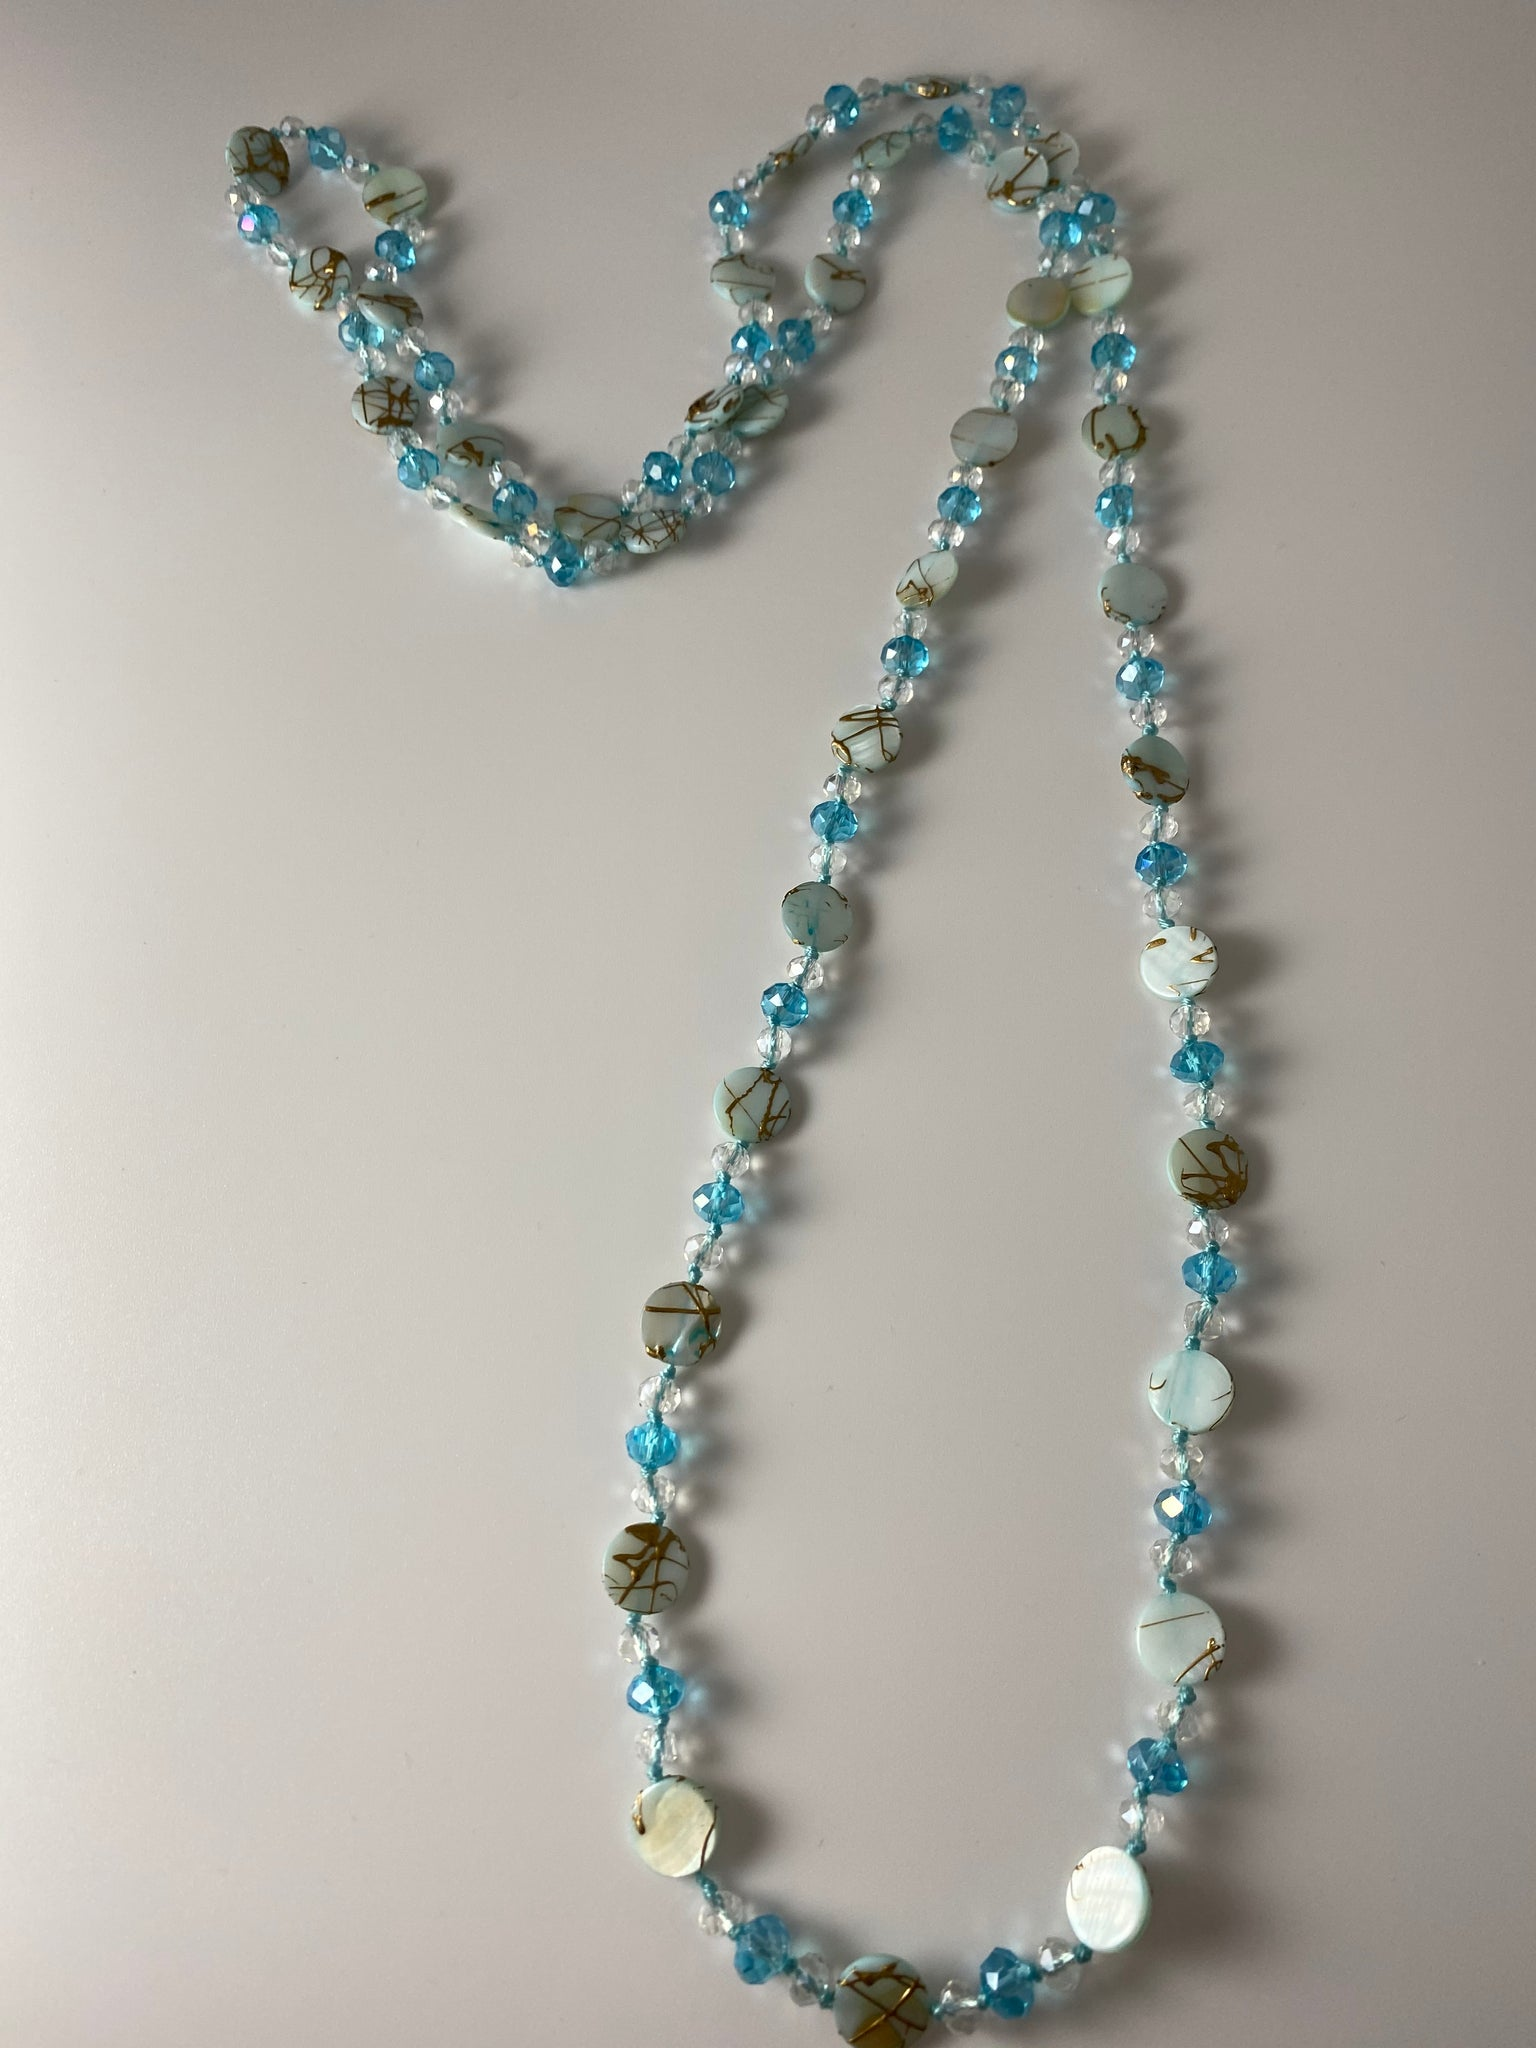 Long necklace, with silver-tone stations and aqua beads.